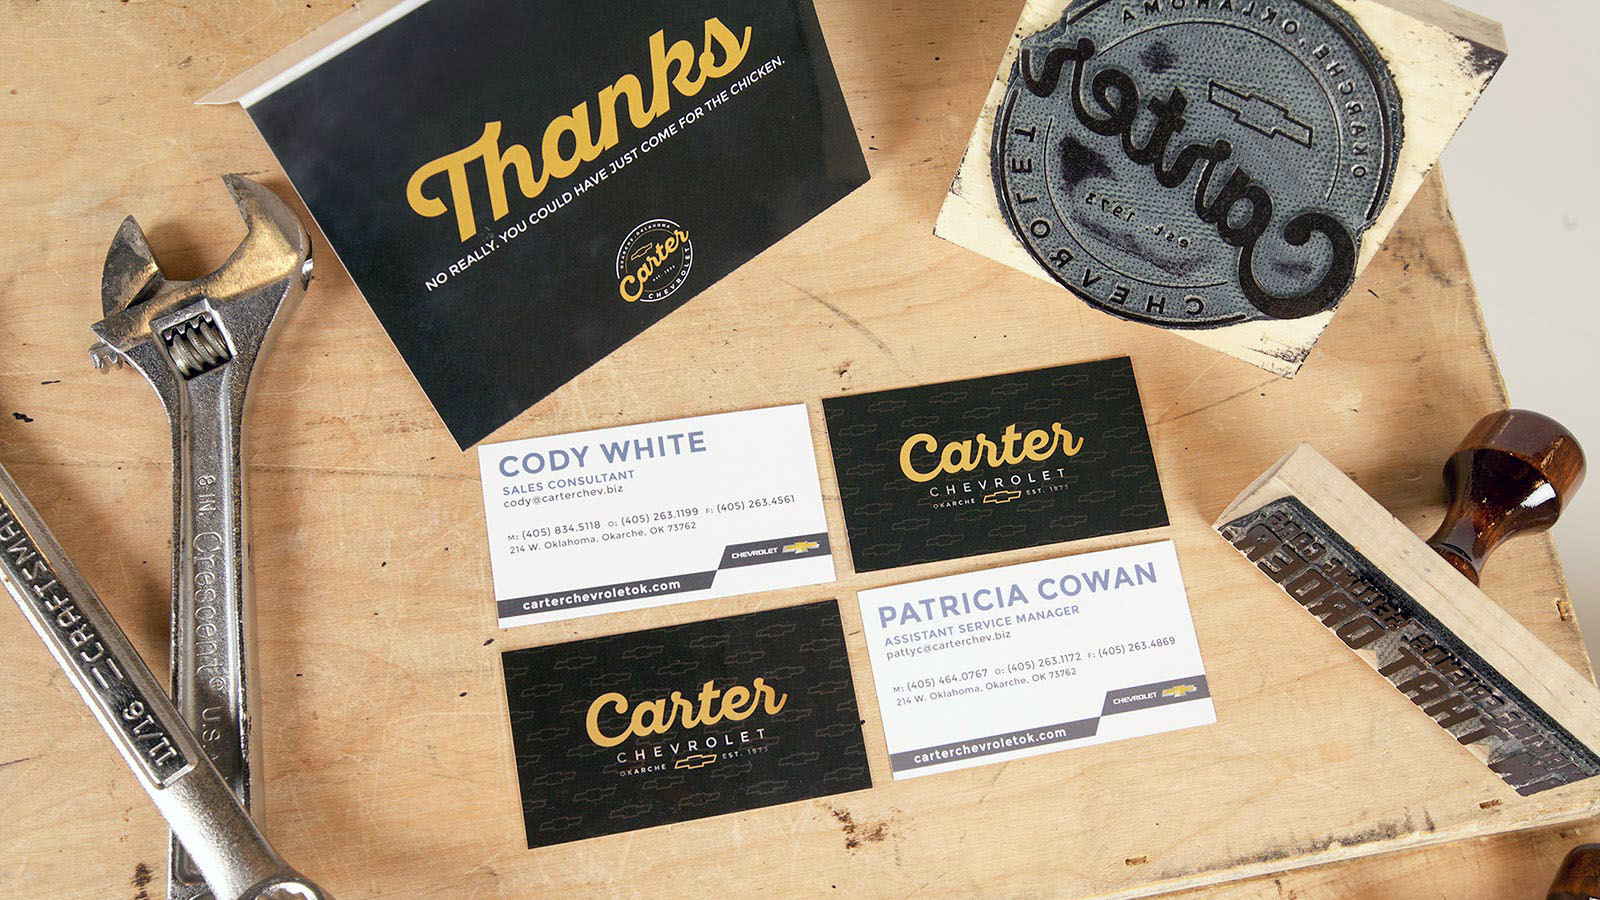 Brand identity for Carter Chevrolet